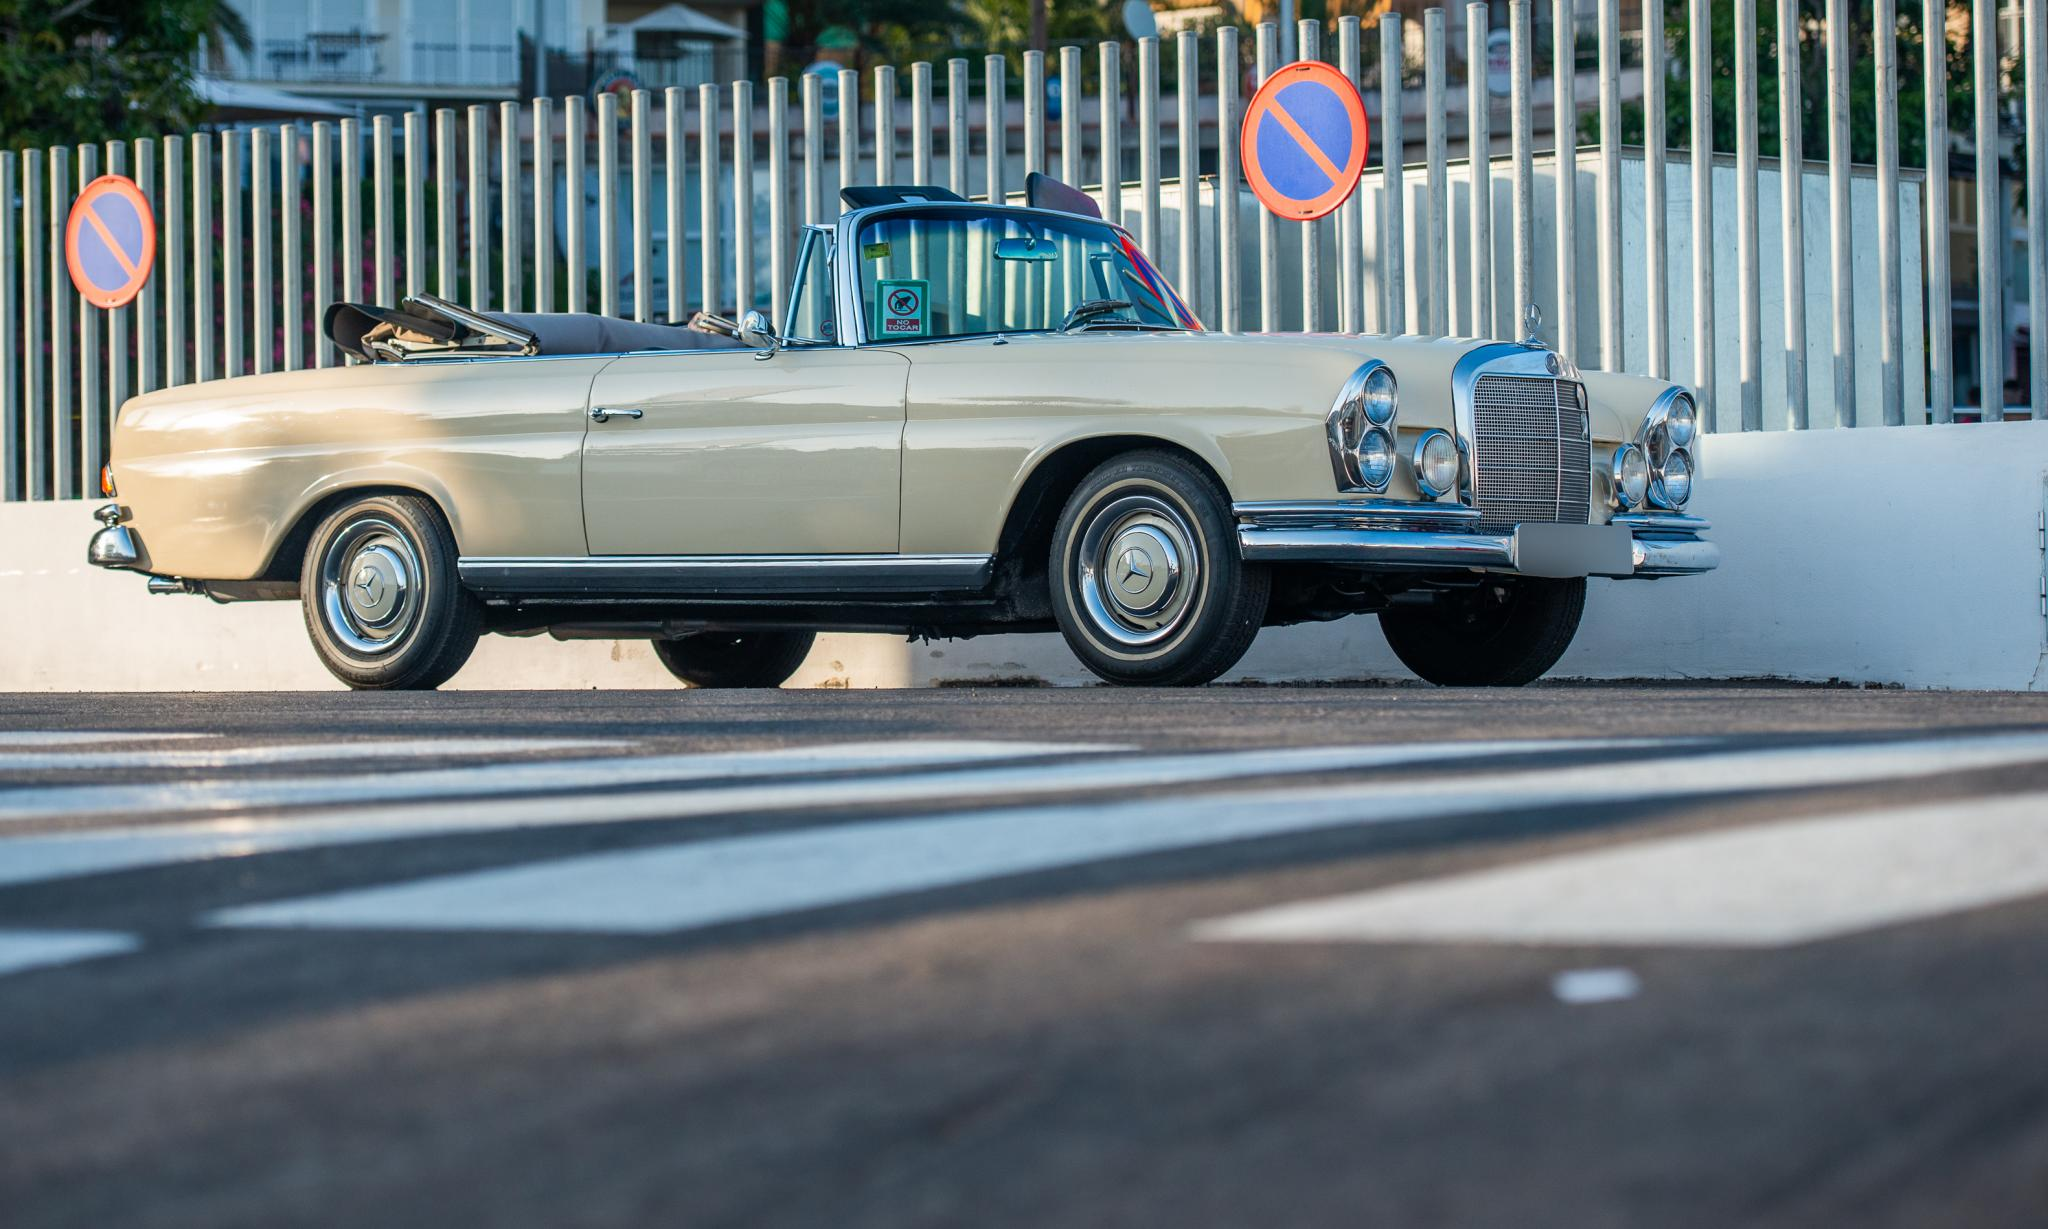 Lovely open air '60s Mercedes.